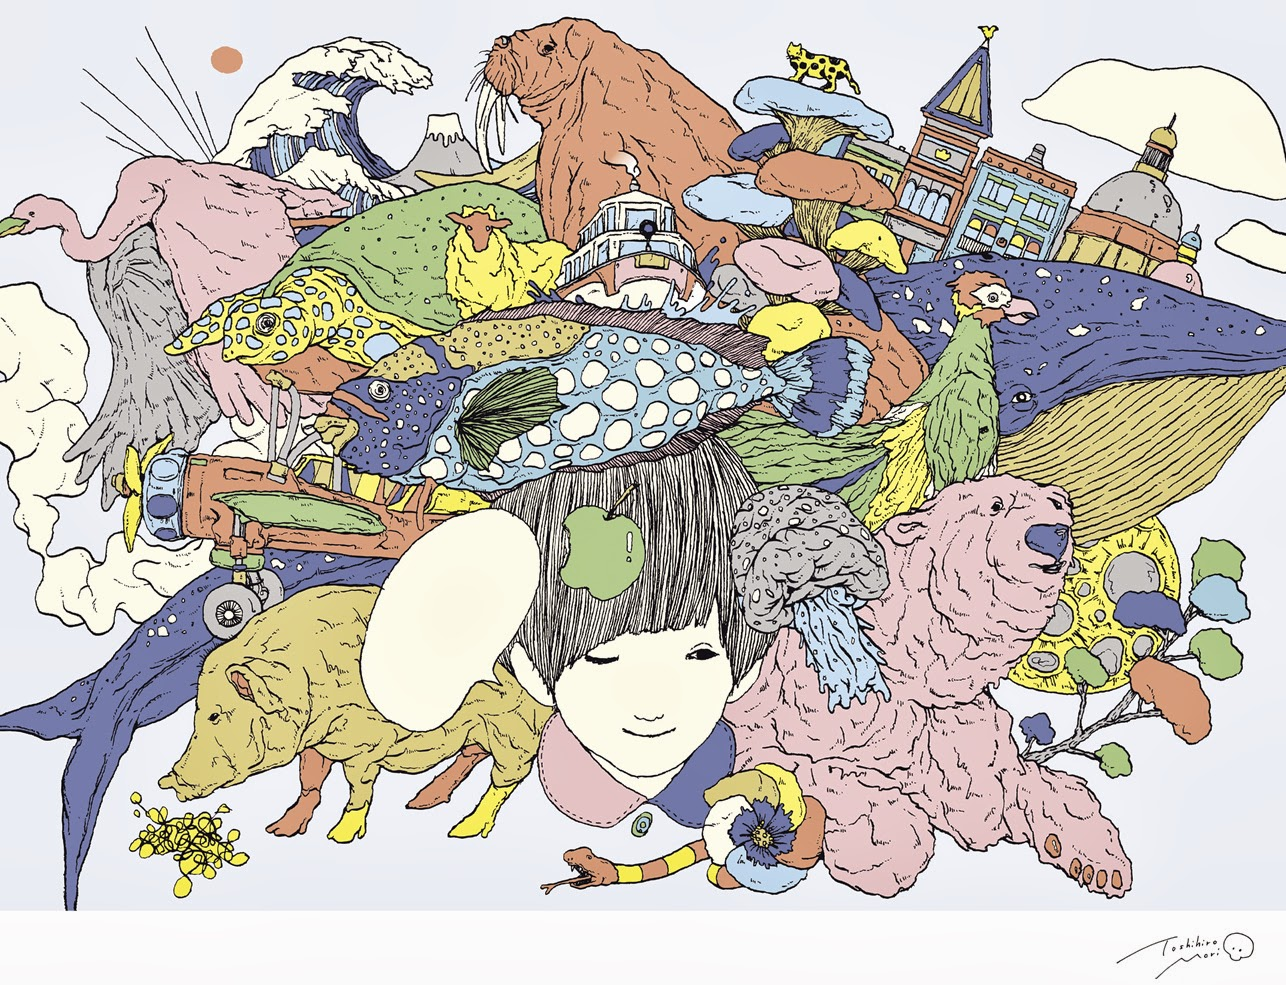 Toshihiro Mori 森 俊博. Pastel Wonderlands. Ilustración | Illustration